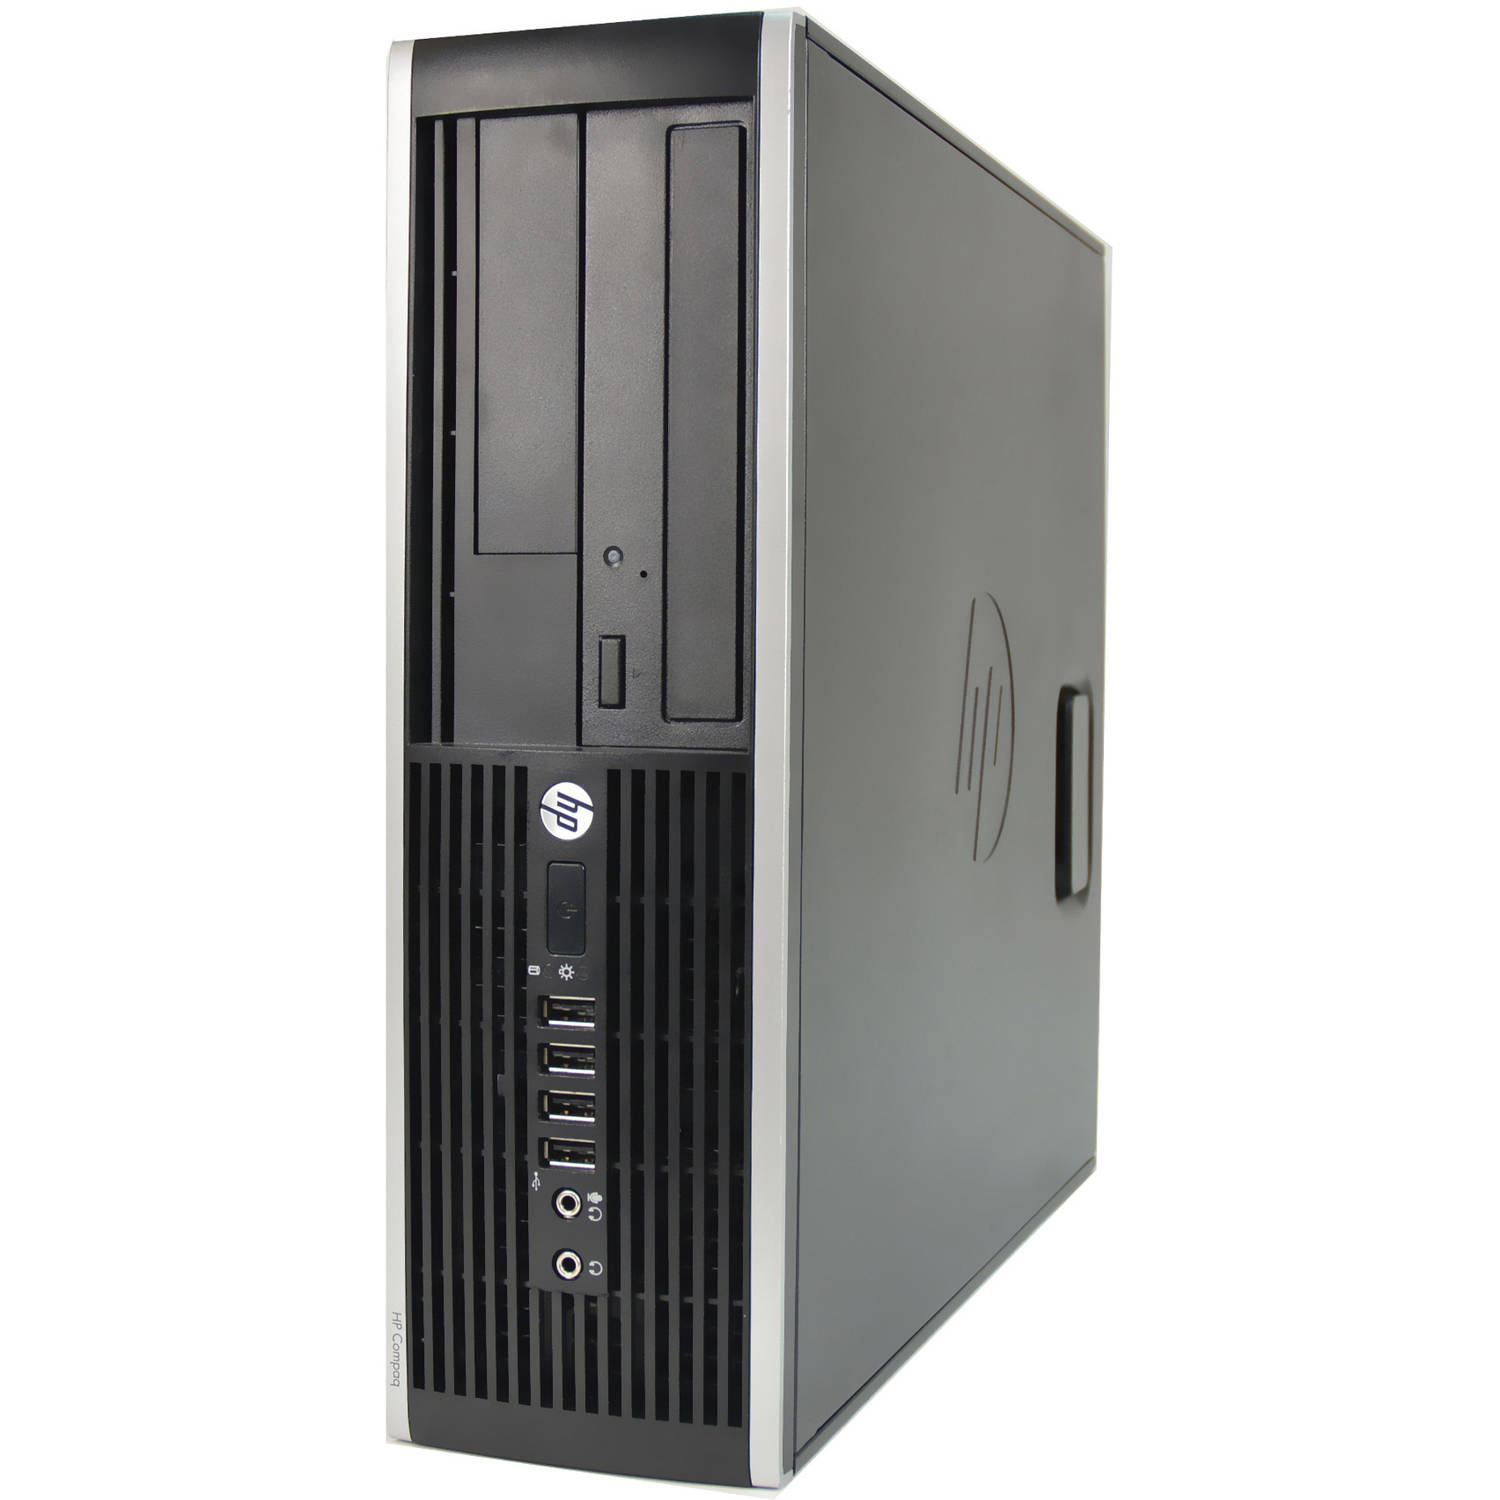 Refurbished HP Black 6200 Desktop PC with Intel Core i3-2100 Processor, 4GB Memory, 500GB Hard Drive and Windows 10 Pro (Monitor Not Included)